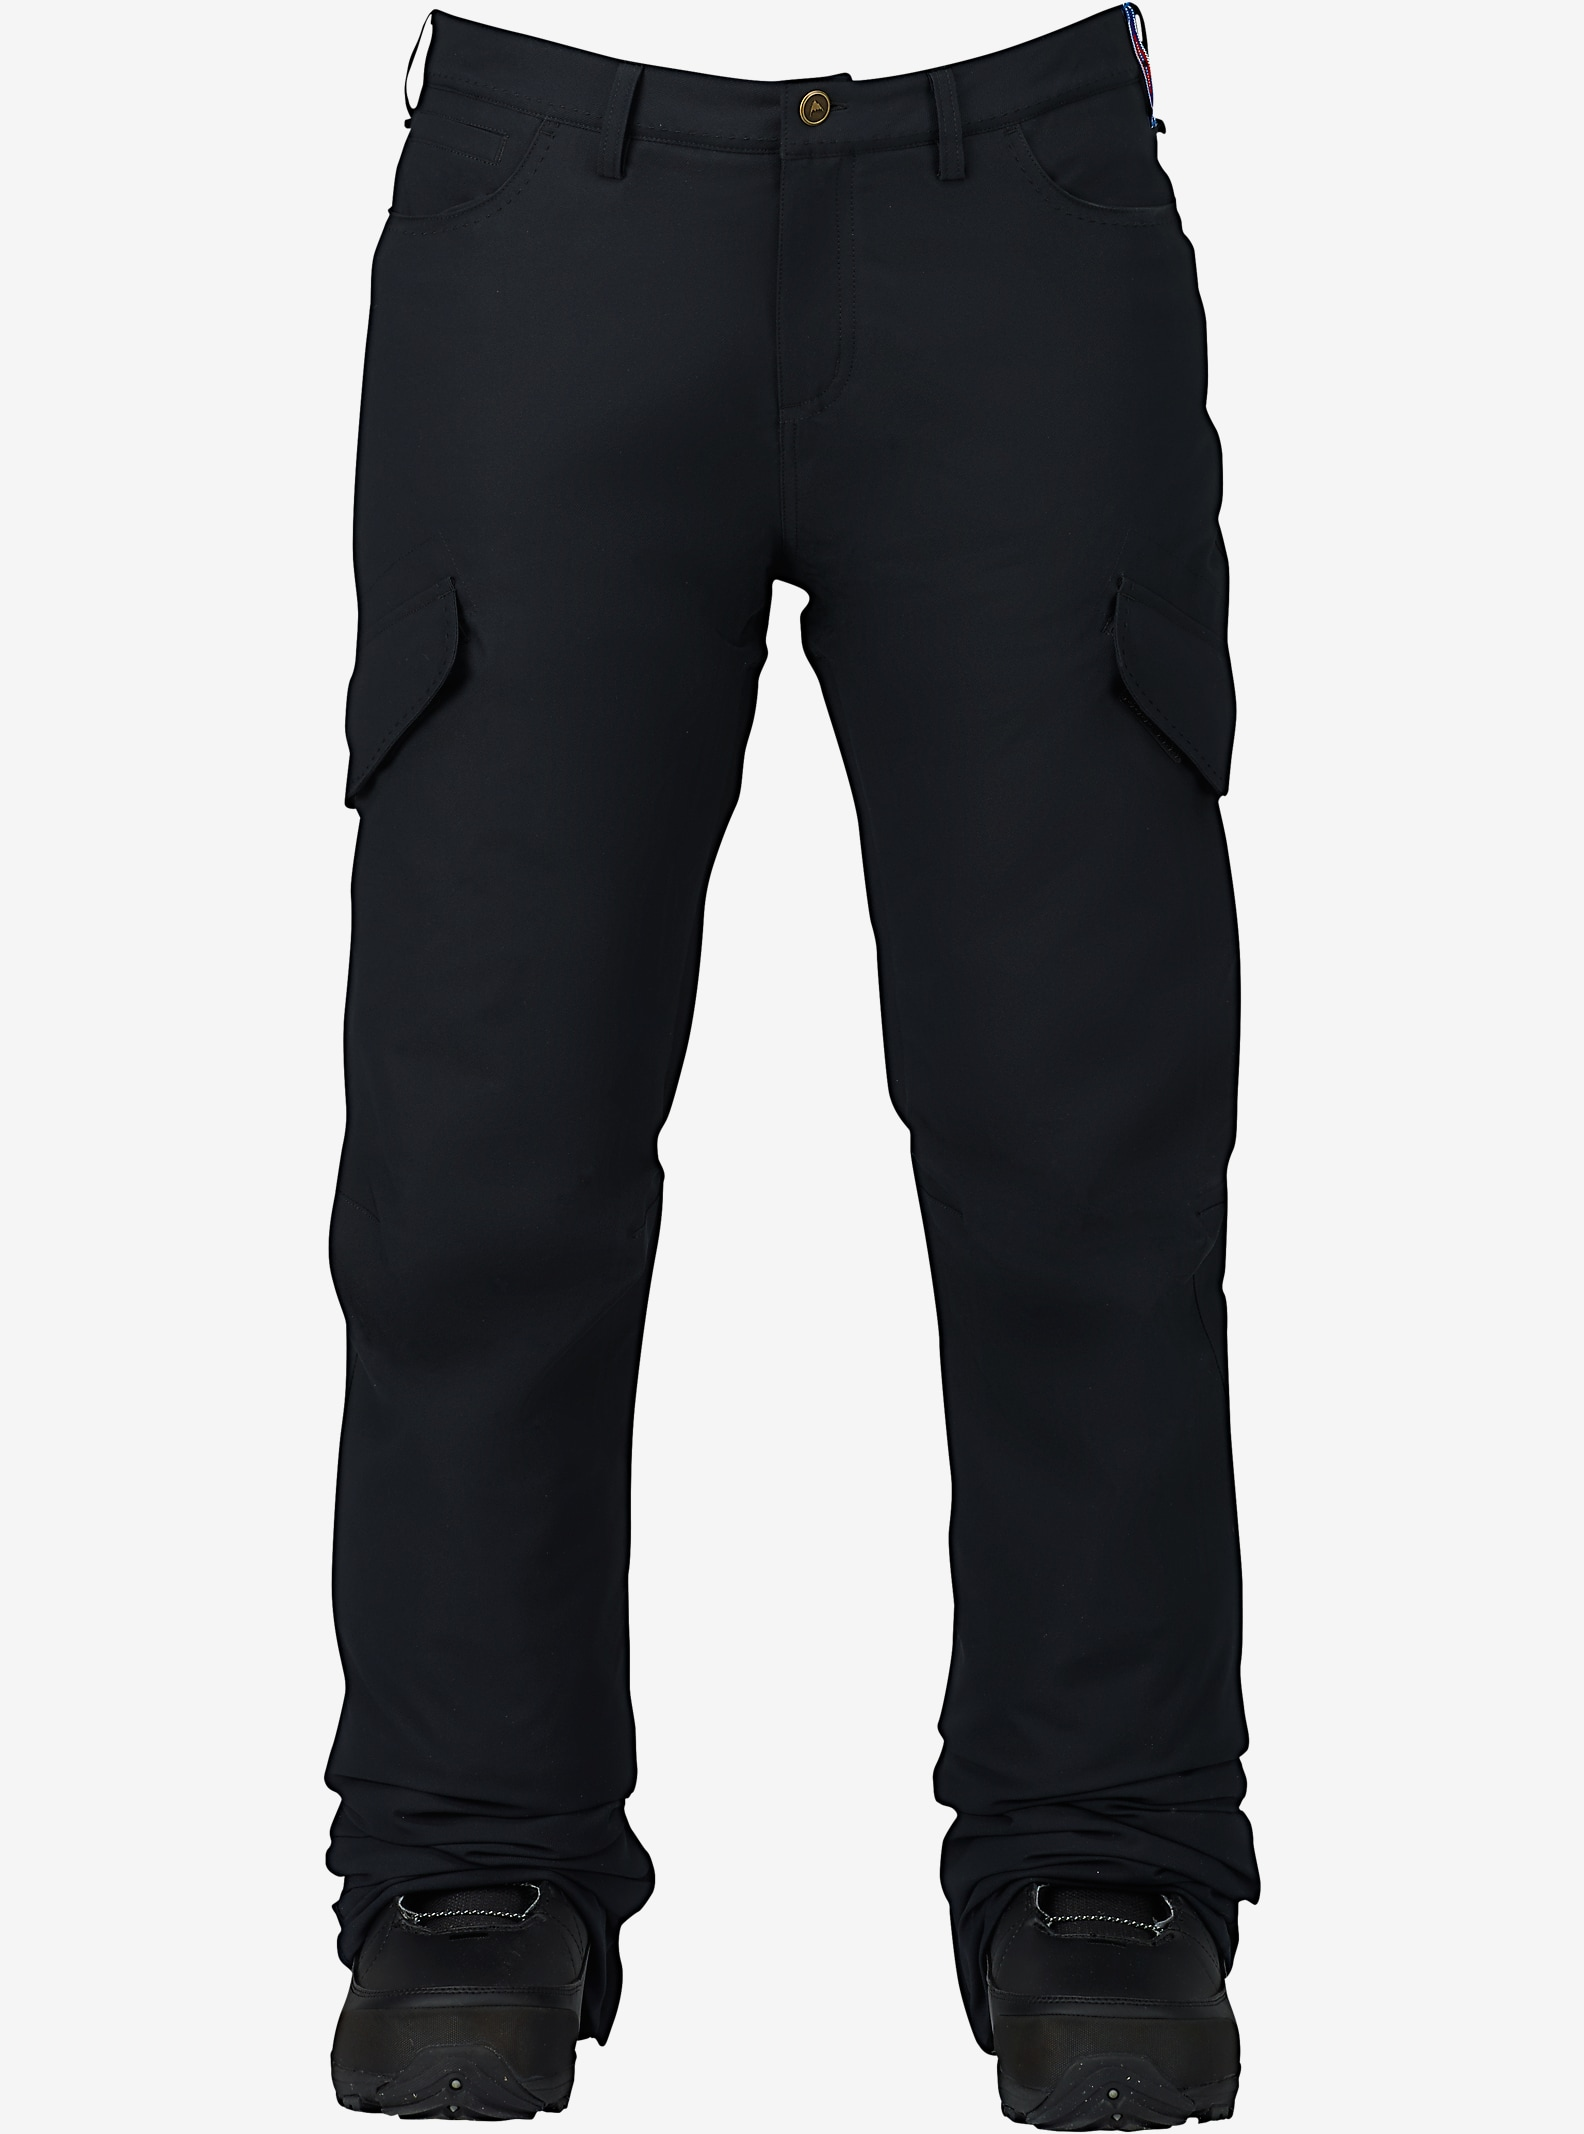 Burton Fly Short Pant shown in True Black